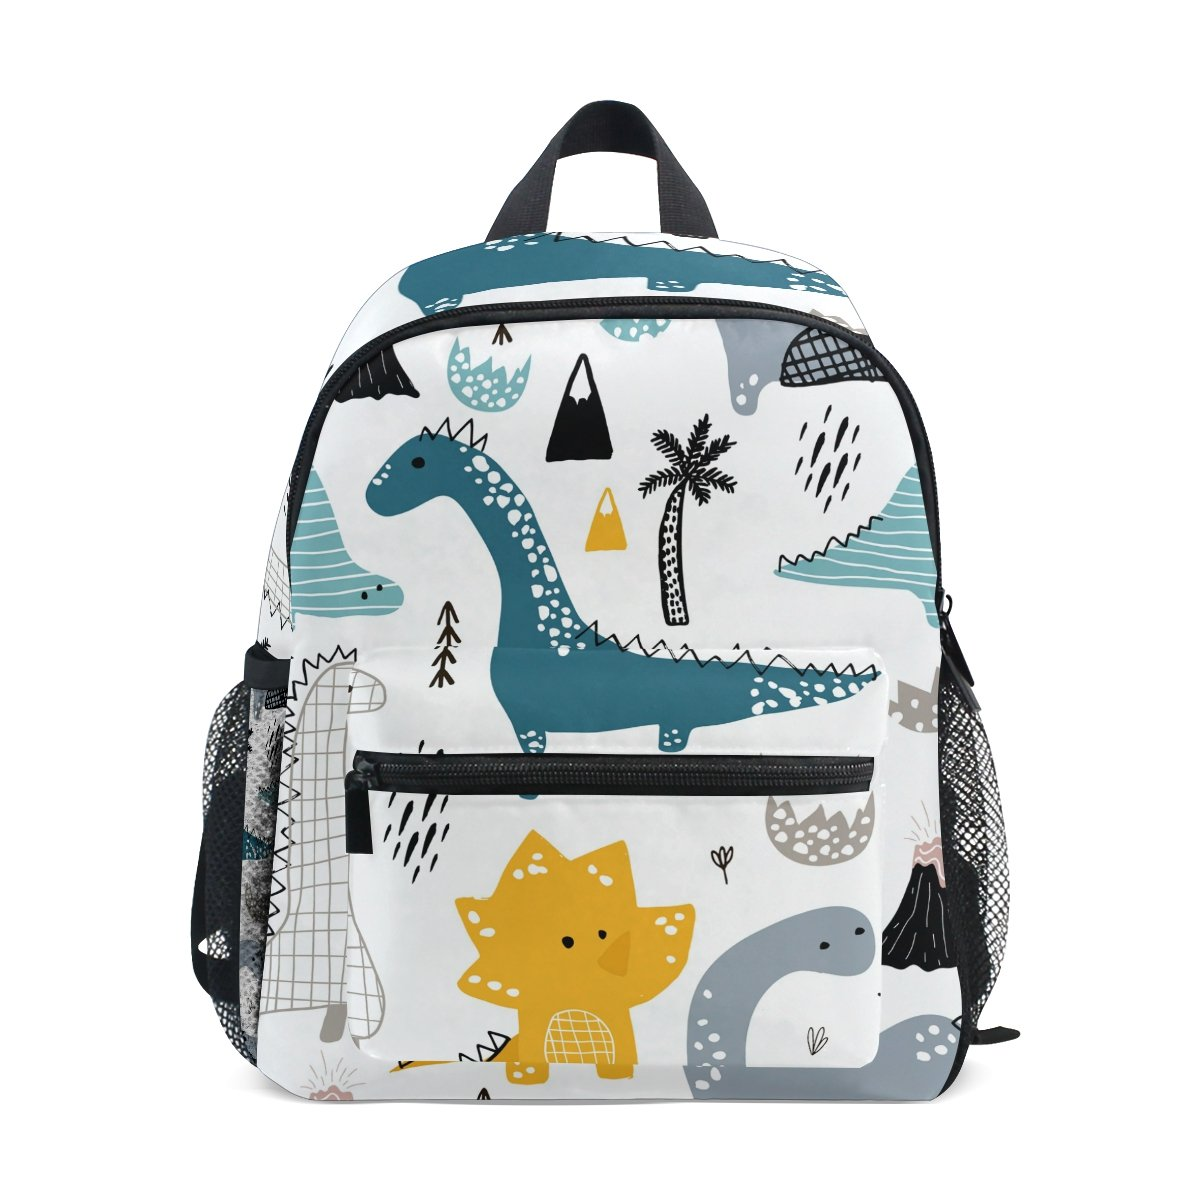 ALAZA Large Backpack for School,Triple Horses Unisex Laptop Backpack Casual Travel School Bookbags for Youth Boys and Girls Back to School